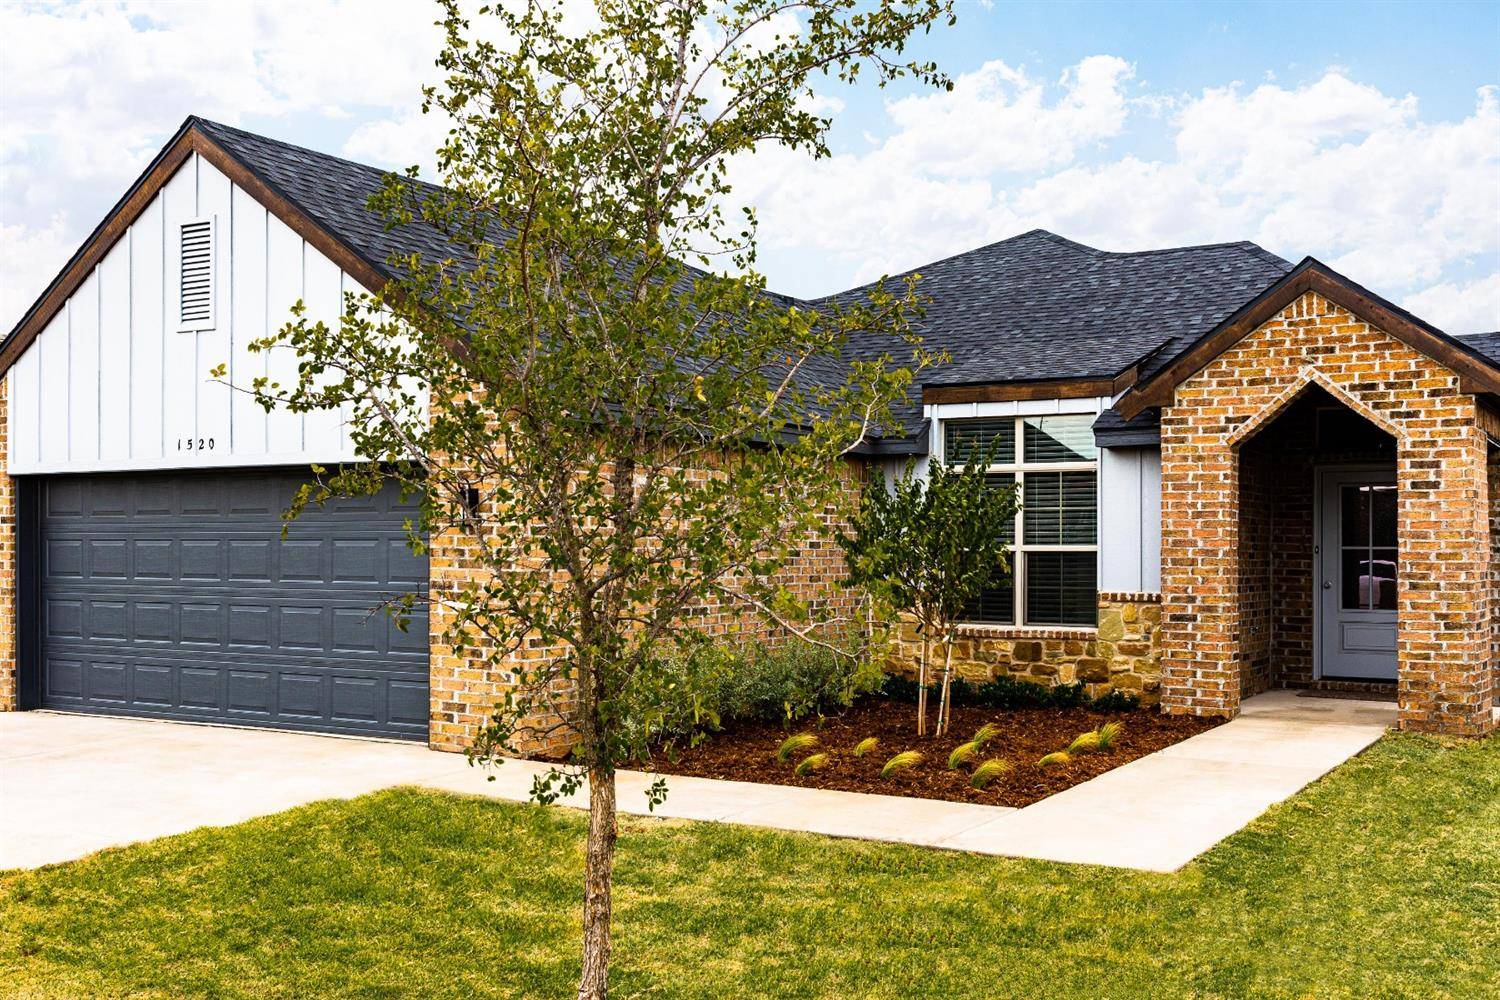 Just Completed! This BEAUTIFUL New Construction Ventura Homes 4 Bedroom, 2 Bath, 2 Car Garage WITH a 20 X 30 Bricked SHOP with Overhead Door in Fabulous Cedar Park has what you have been looking for! Open floor plan with Vaulted Ceiling & Stone Surround Fireplace! Kitchen offers Granite, Spacious Island w/ Pendant Lighting & Seating for 3, Stainless Steel Appliances including Microwave & Gas Range! Isolated Master Suite with Office Nook, Double Granite Vanities, Walk-in Closet, Tiled Shower & Soaking Tub! Guest Bedrooms offer Special Ceilings & walk-in closets! Over-sized Fenced Backyard with Covered Patio, Sprinklers, Sod & Amazing SHOP! Additional Features include 2 inch Faux Wood Blinds, Designer Hardware, Spacious Walk-in Closets, Built-in Linen Storage in Baths & Laundry, Full Builder's warranty...walk to Park! Close to Restaurants, Shopping, Medical Center & University! Come see what the Ventura Homes Difference is all About!